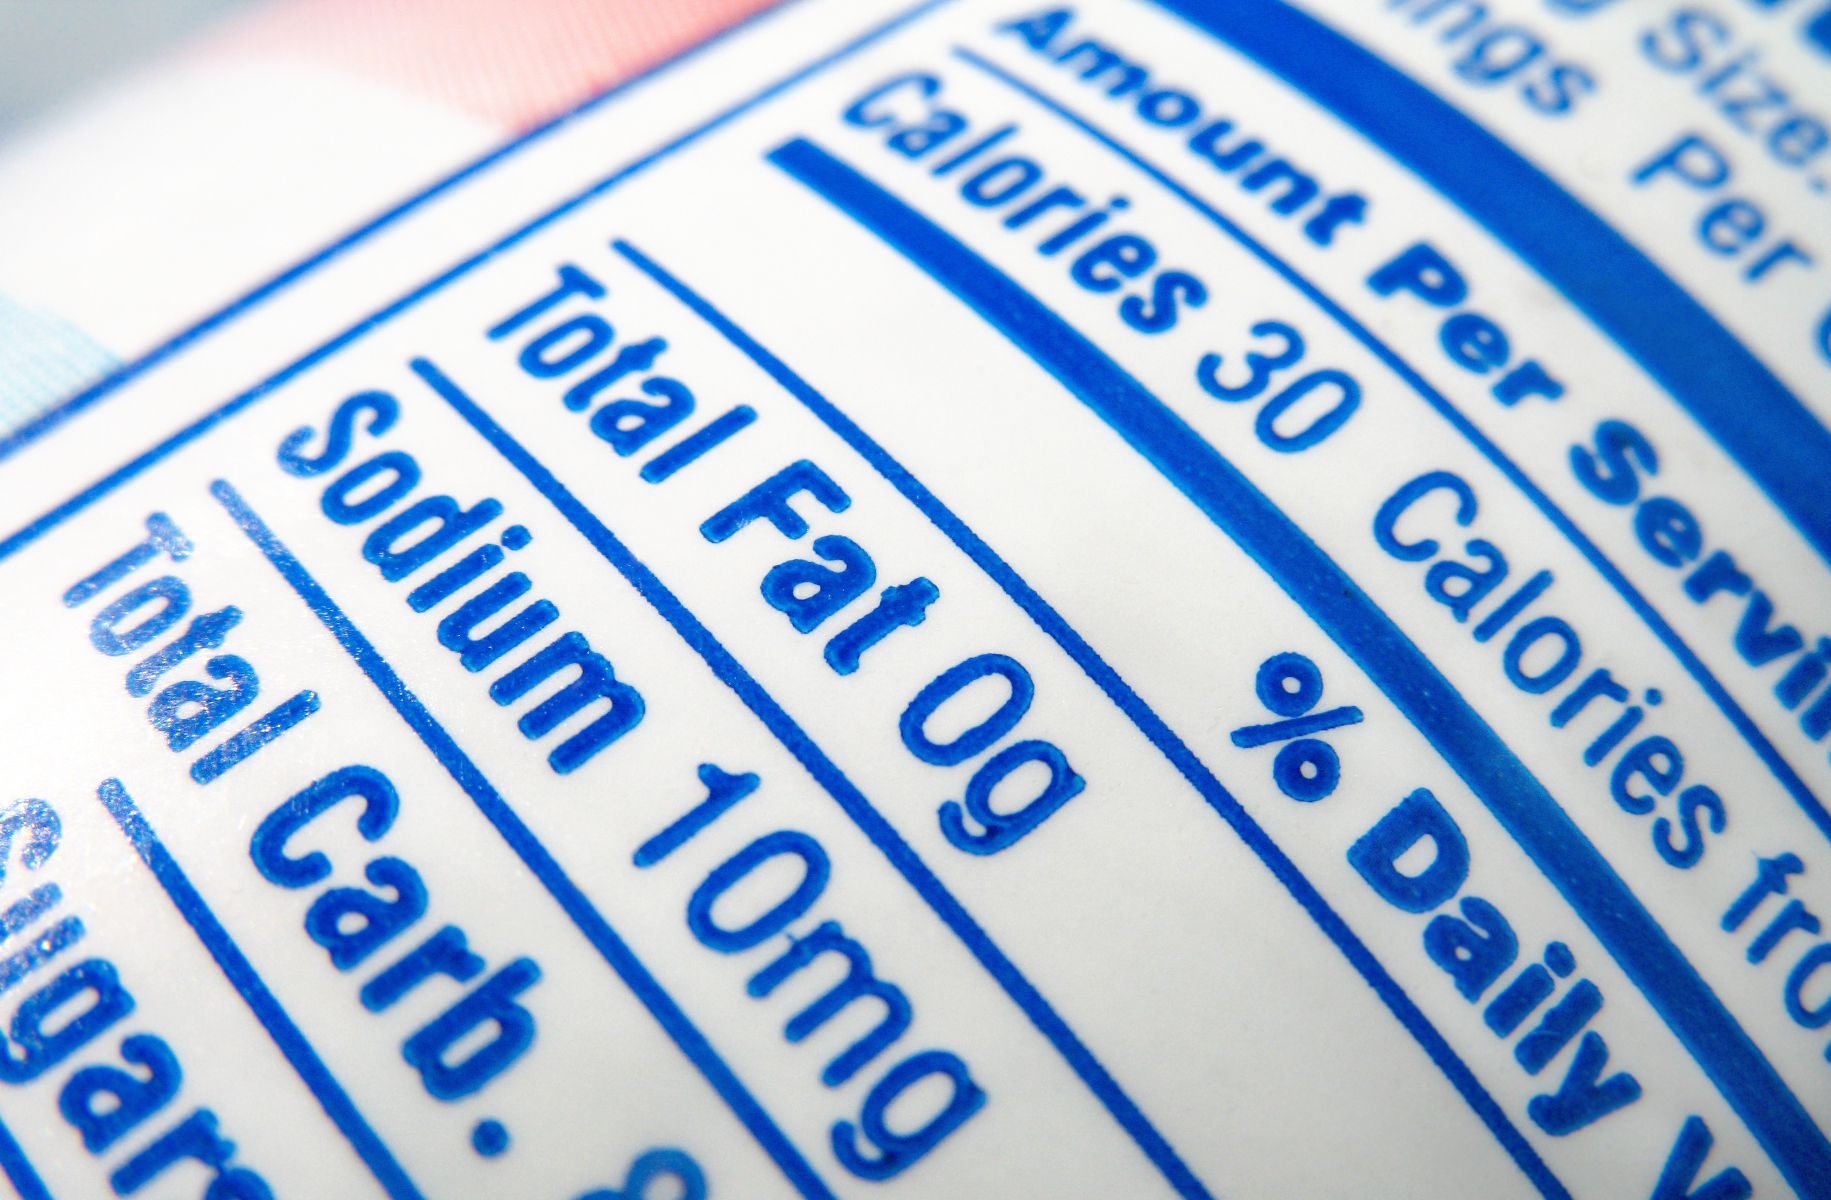 How to count carbs and read nutrition labels forumfinder Choice Image